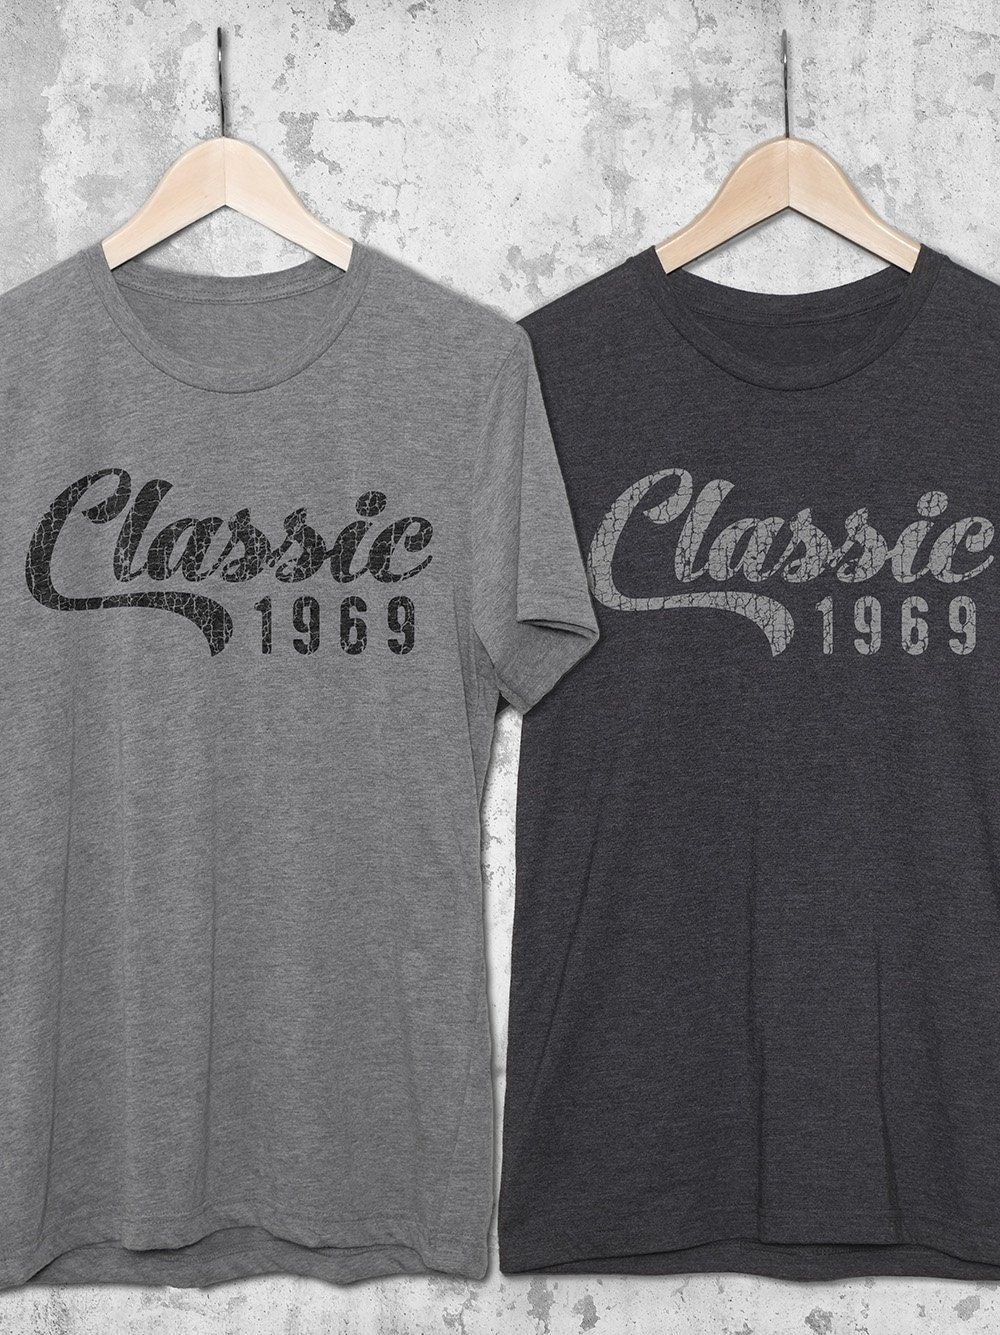 Classic 1969 T Shirt 50th Birthday Gifts For Women Men